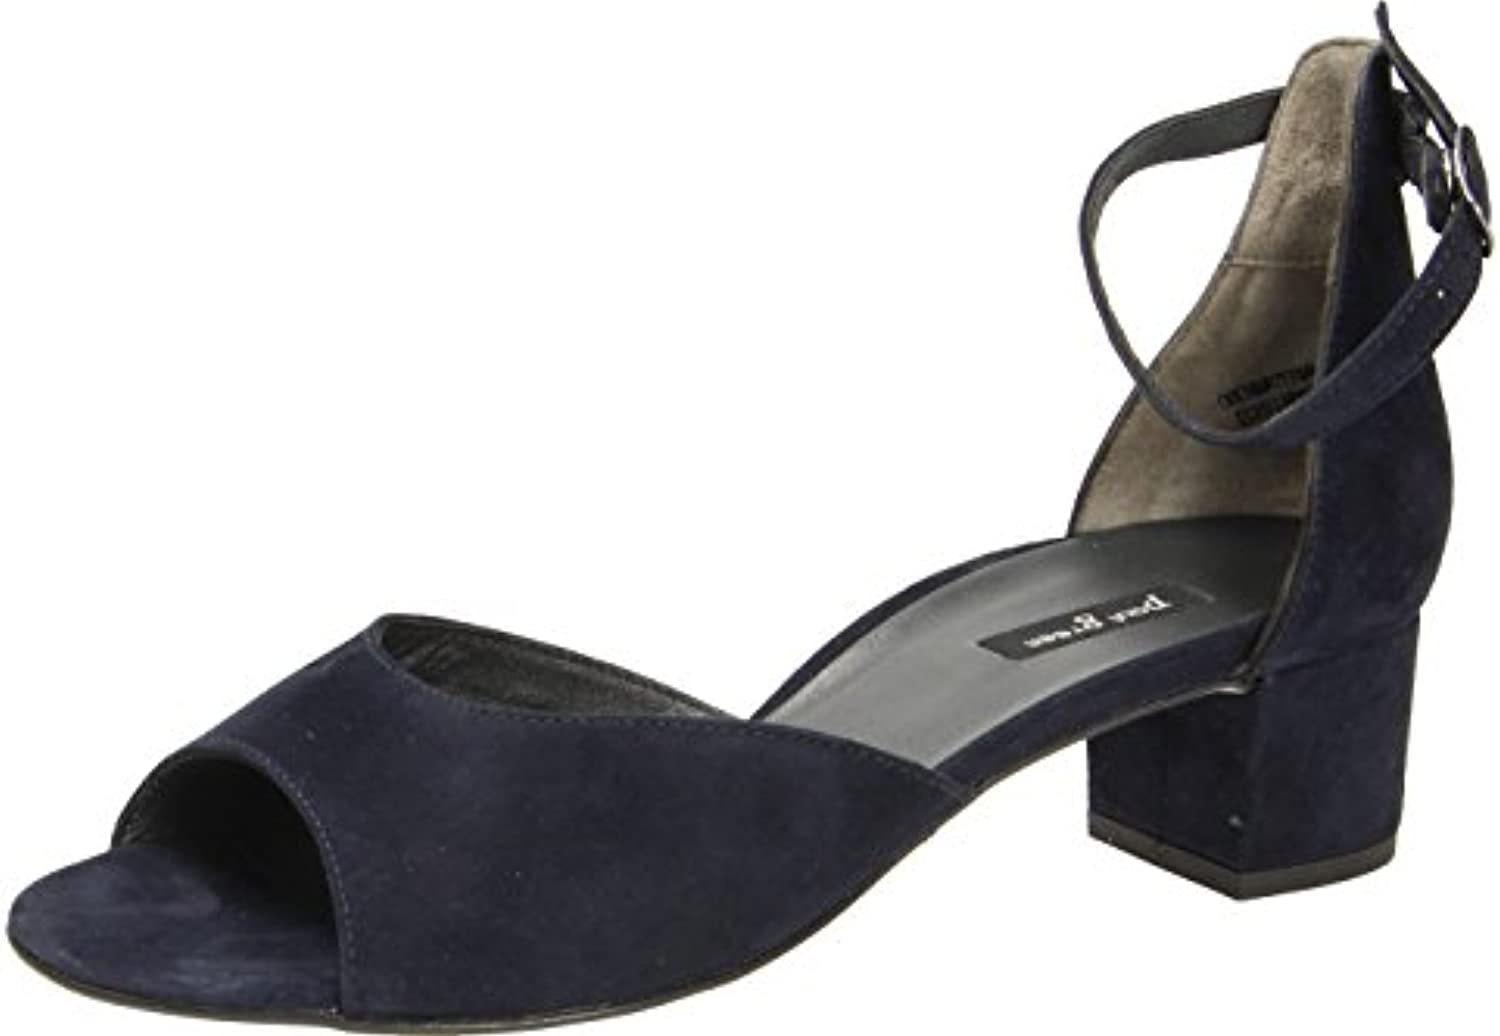 Paul Green Damen Sandaletten 6039 6039-009 Blau 285356